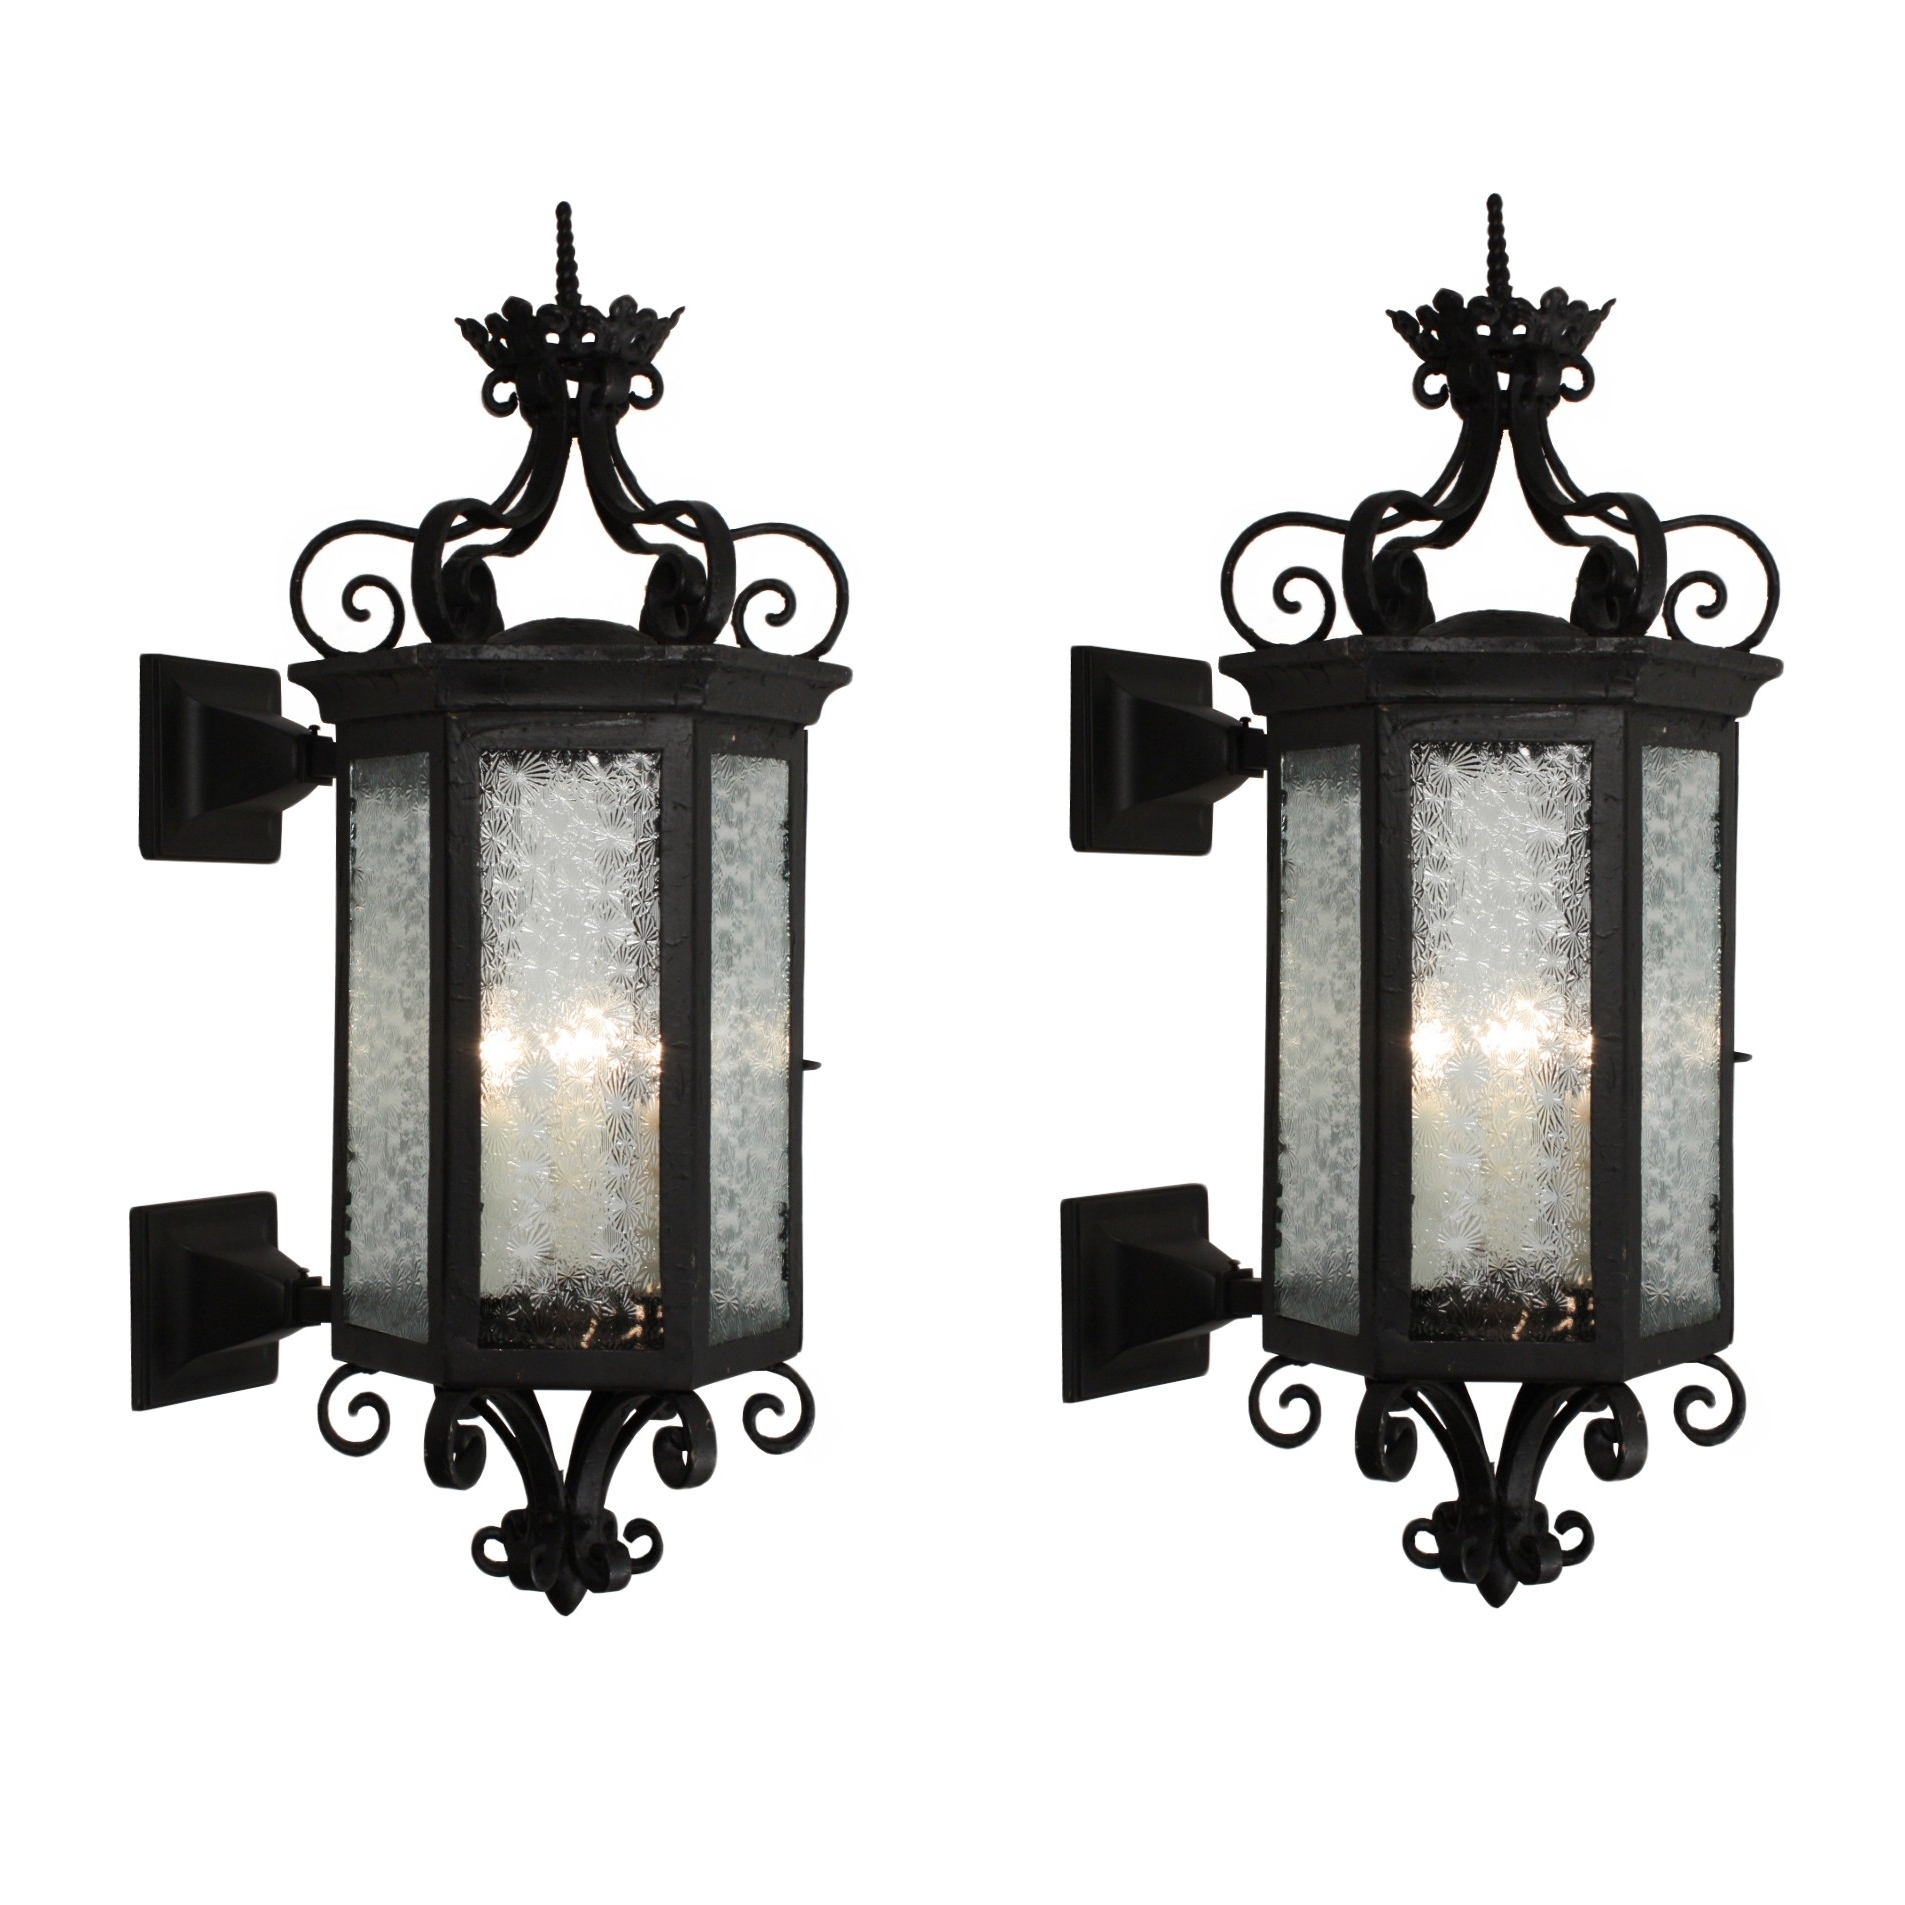 Preferred Outdoor Exterior Lanterns Intended For Substantial Pair Antique Iron Exterior Lantern Sconces Wall Sconce (View 17 of 20)